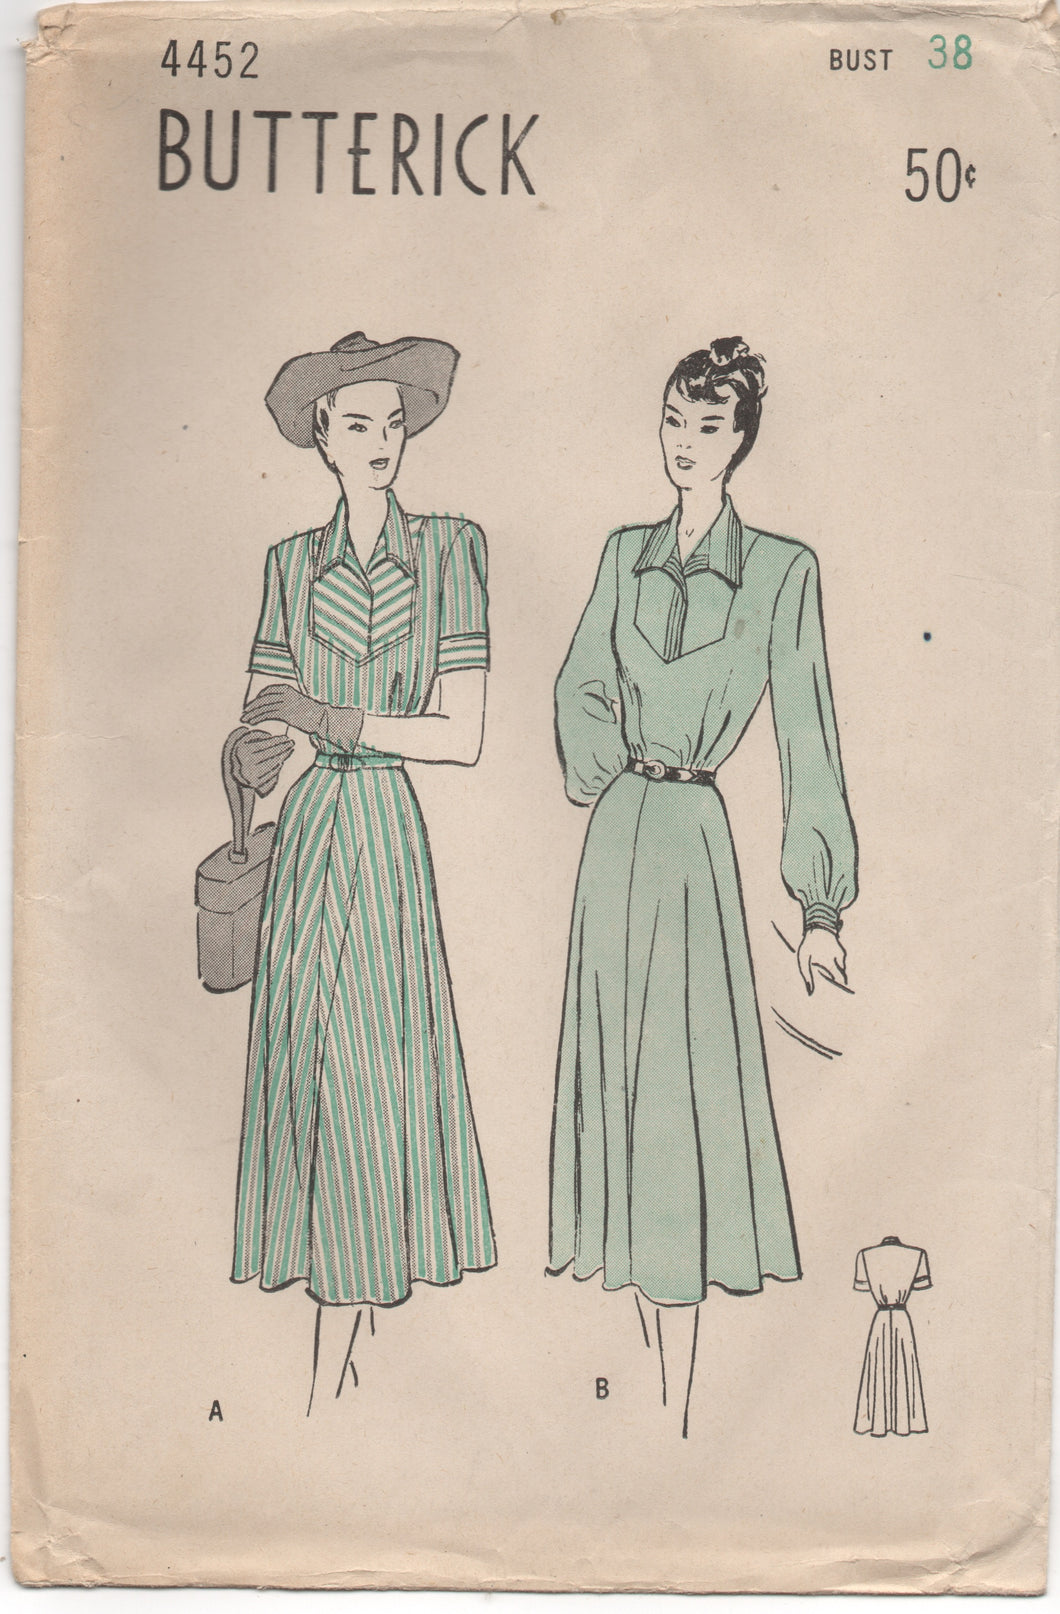 1940's Butterick One Piece Tailored Dress with Bell Sleeves - Bust 38